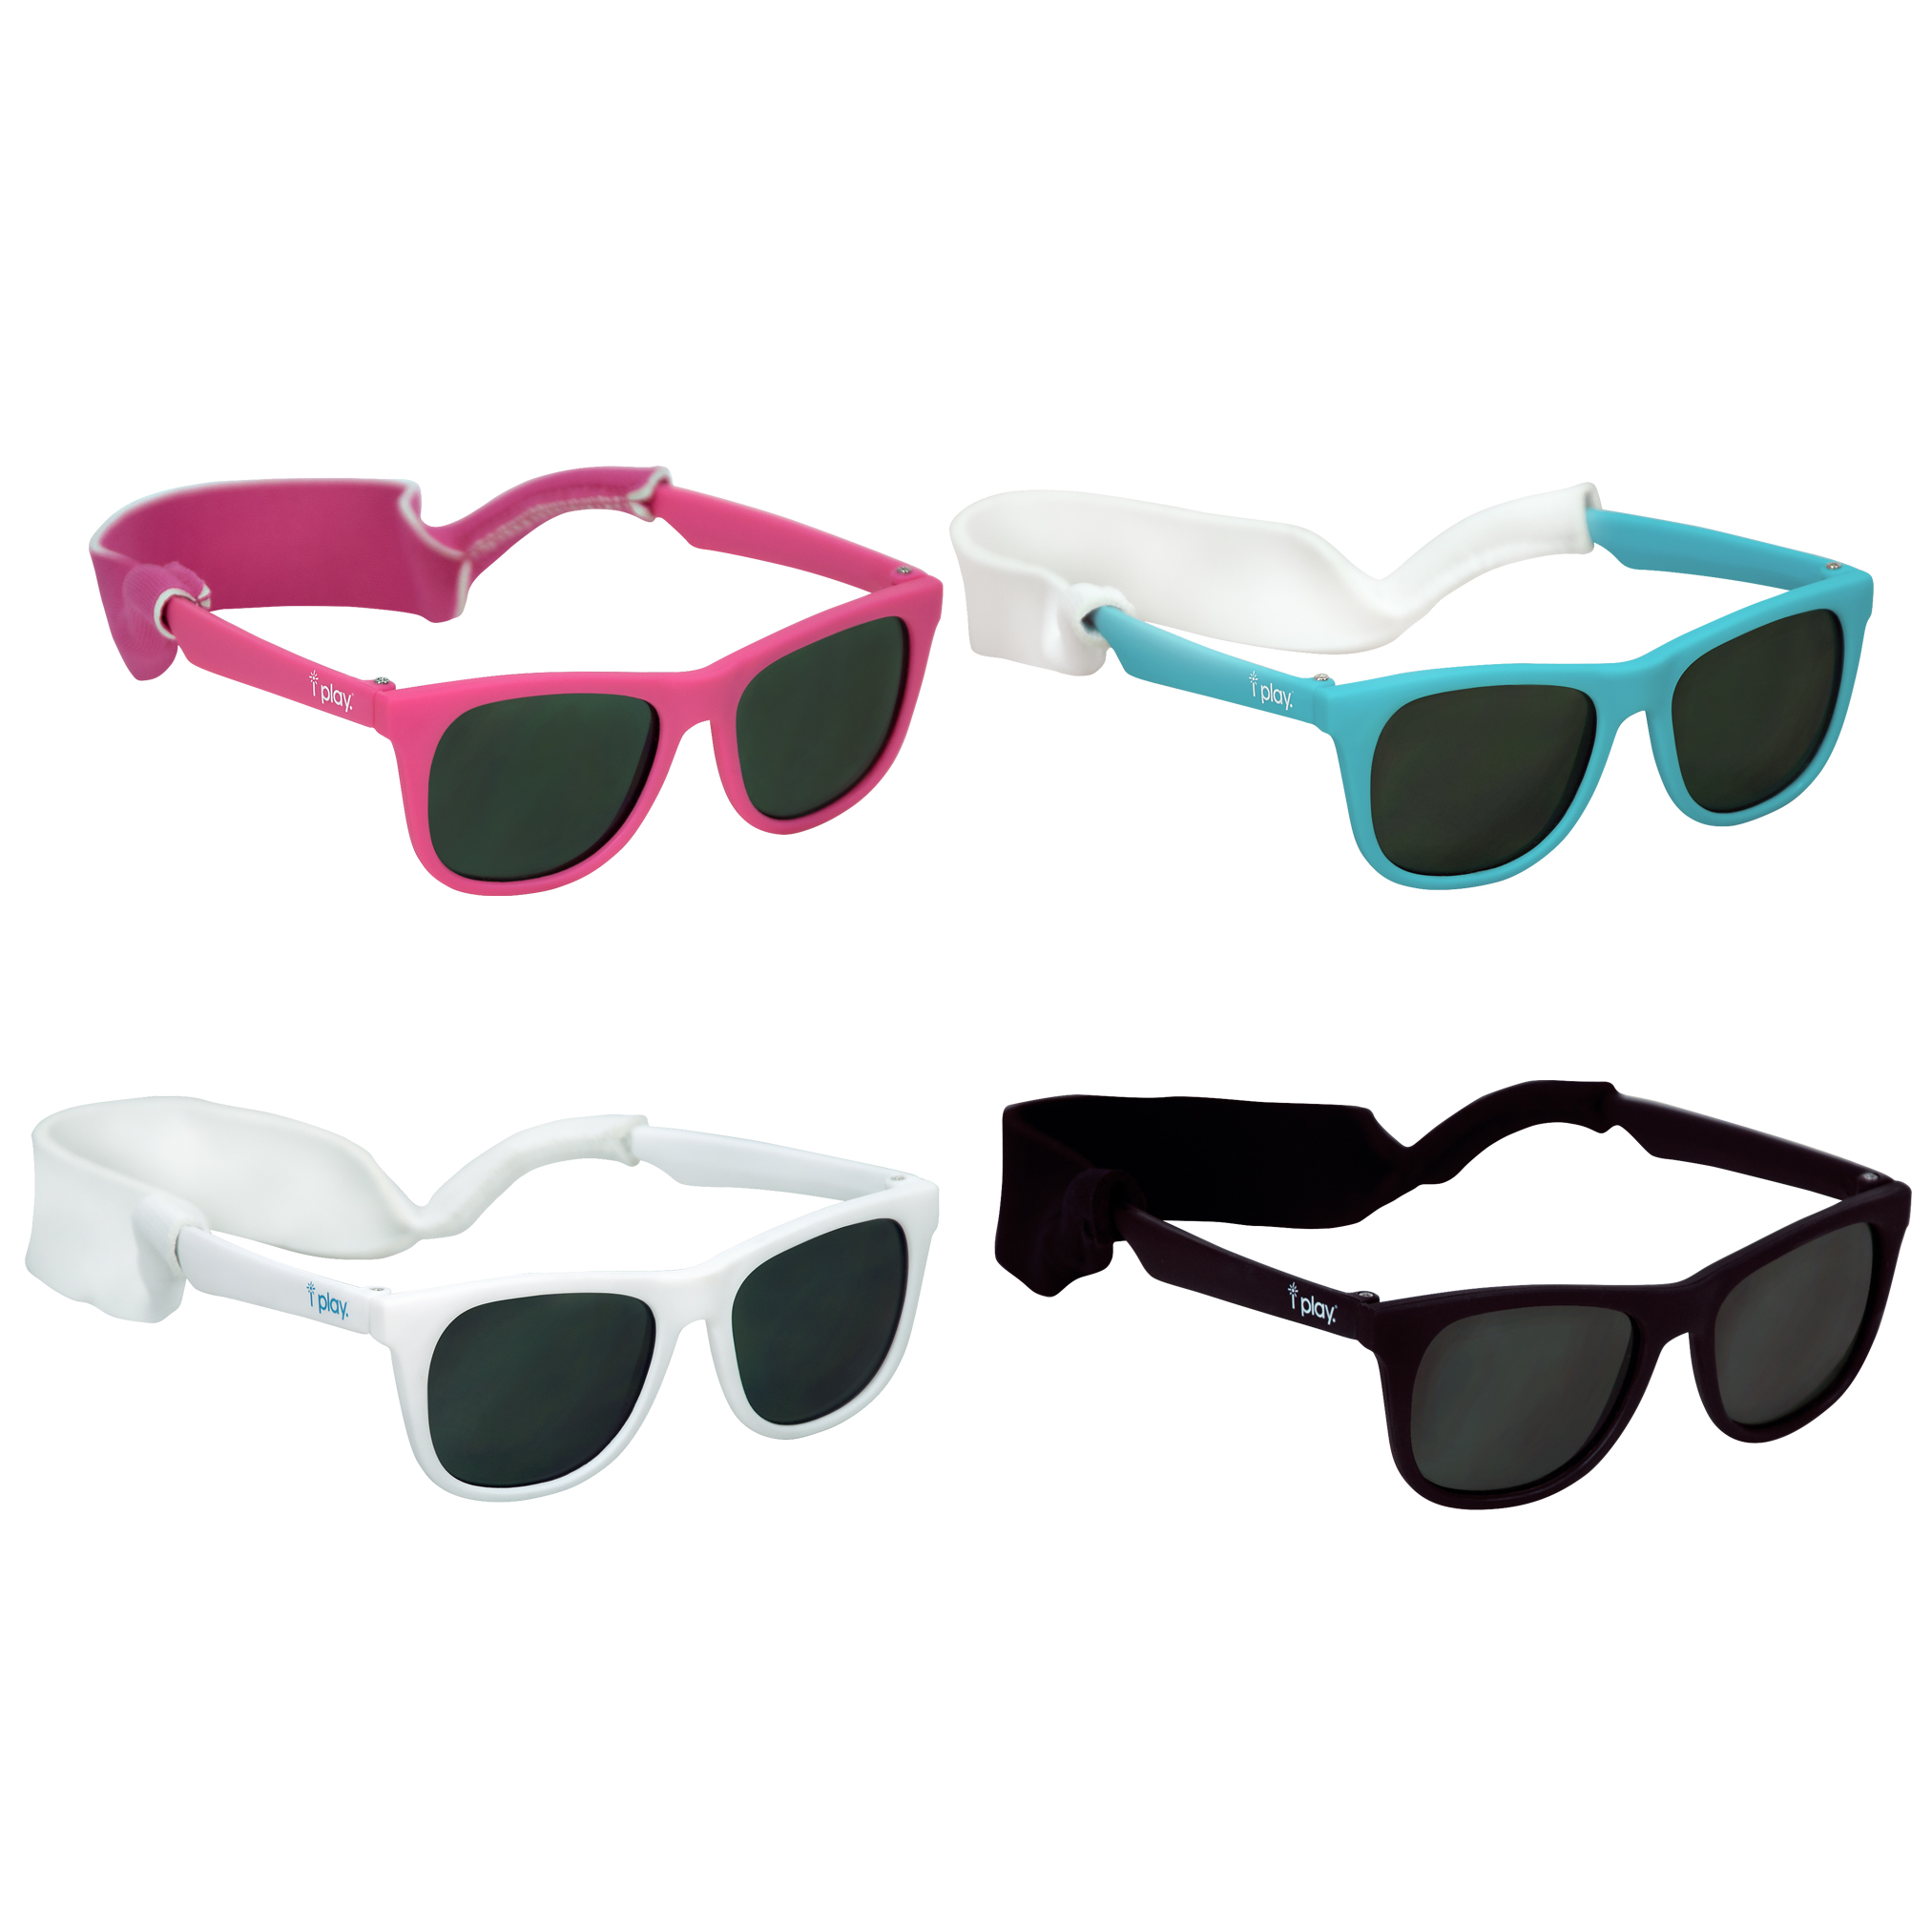 758391-Sunglasses-Group